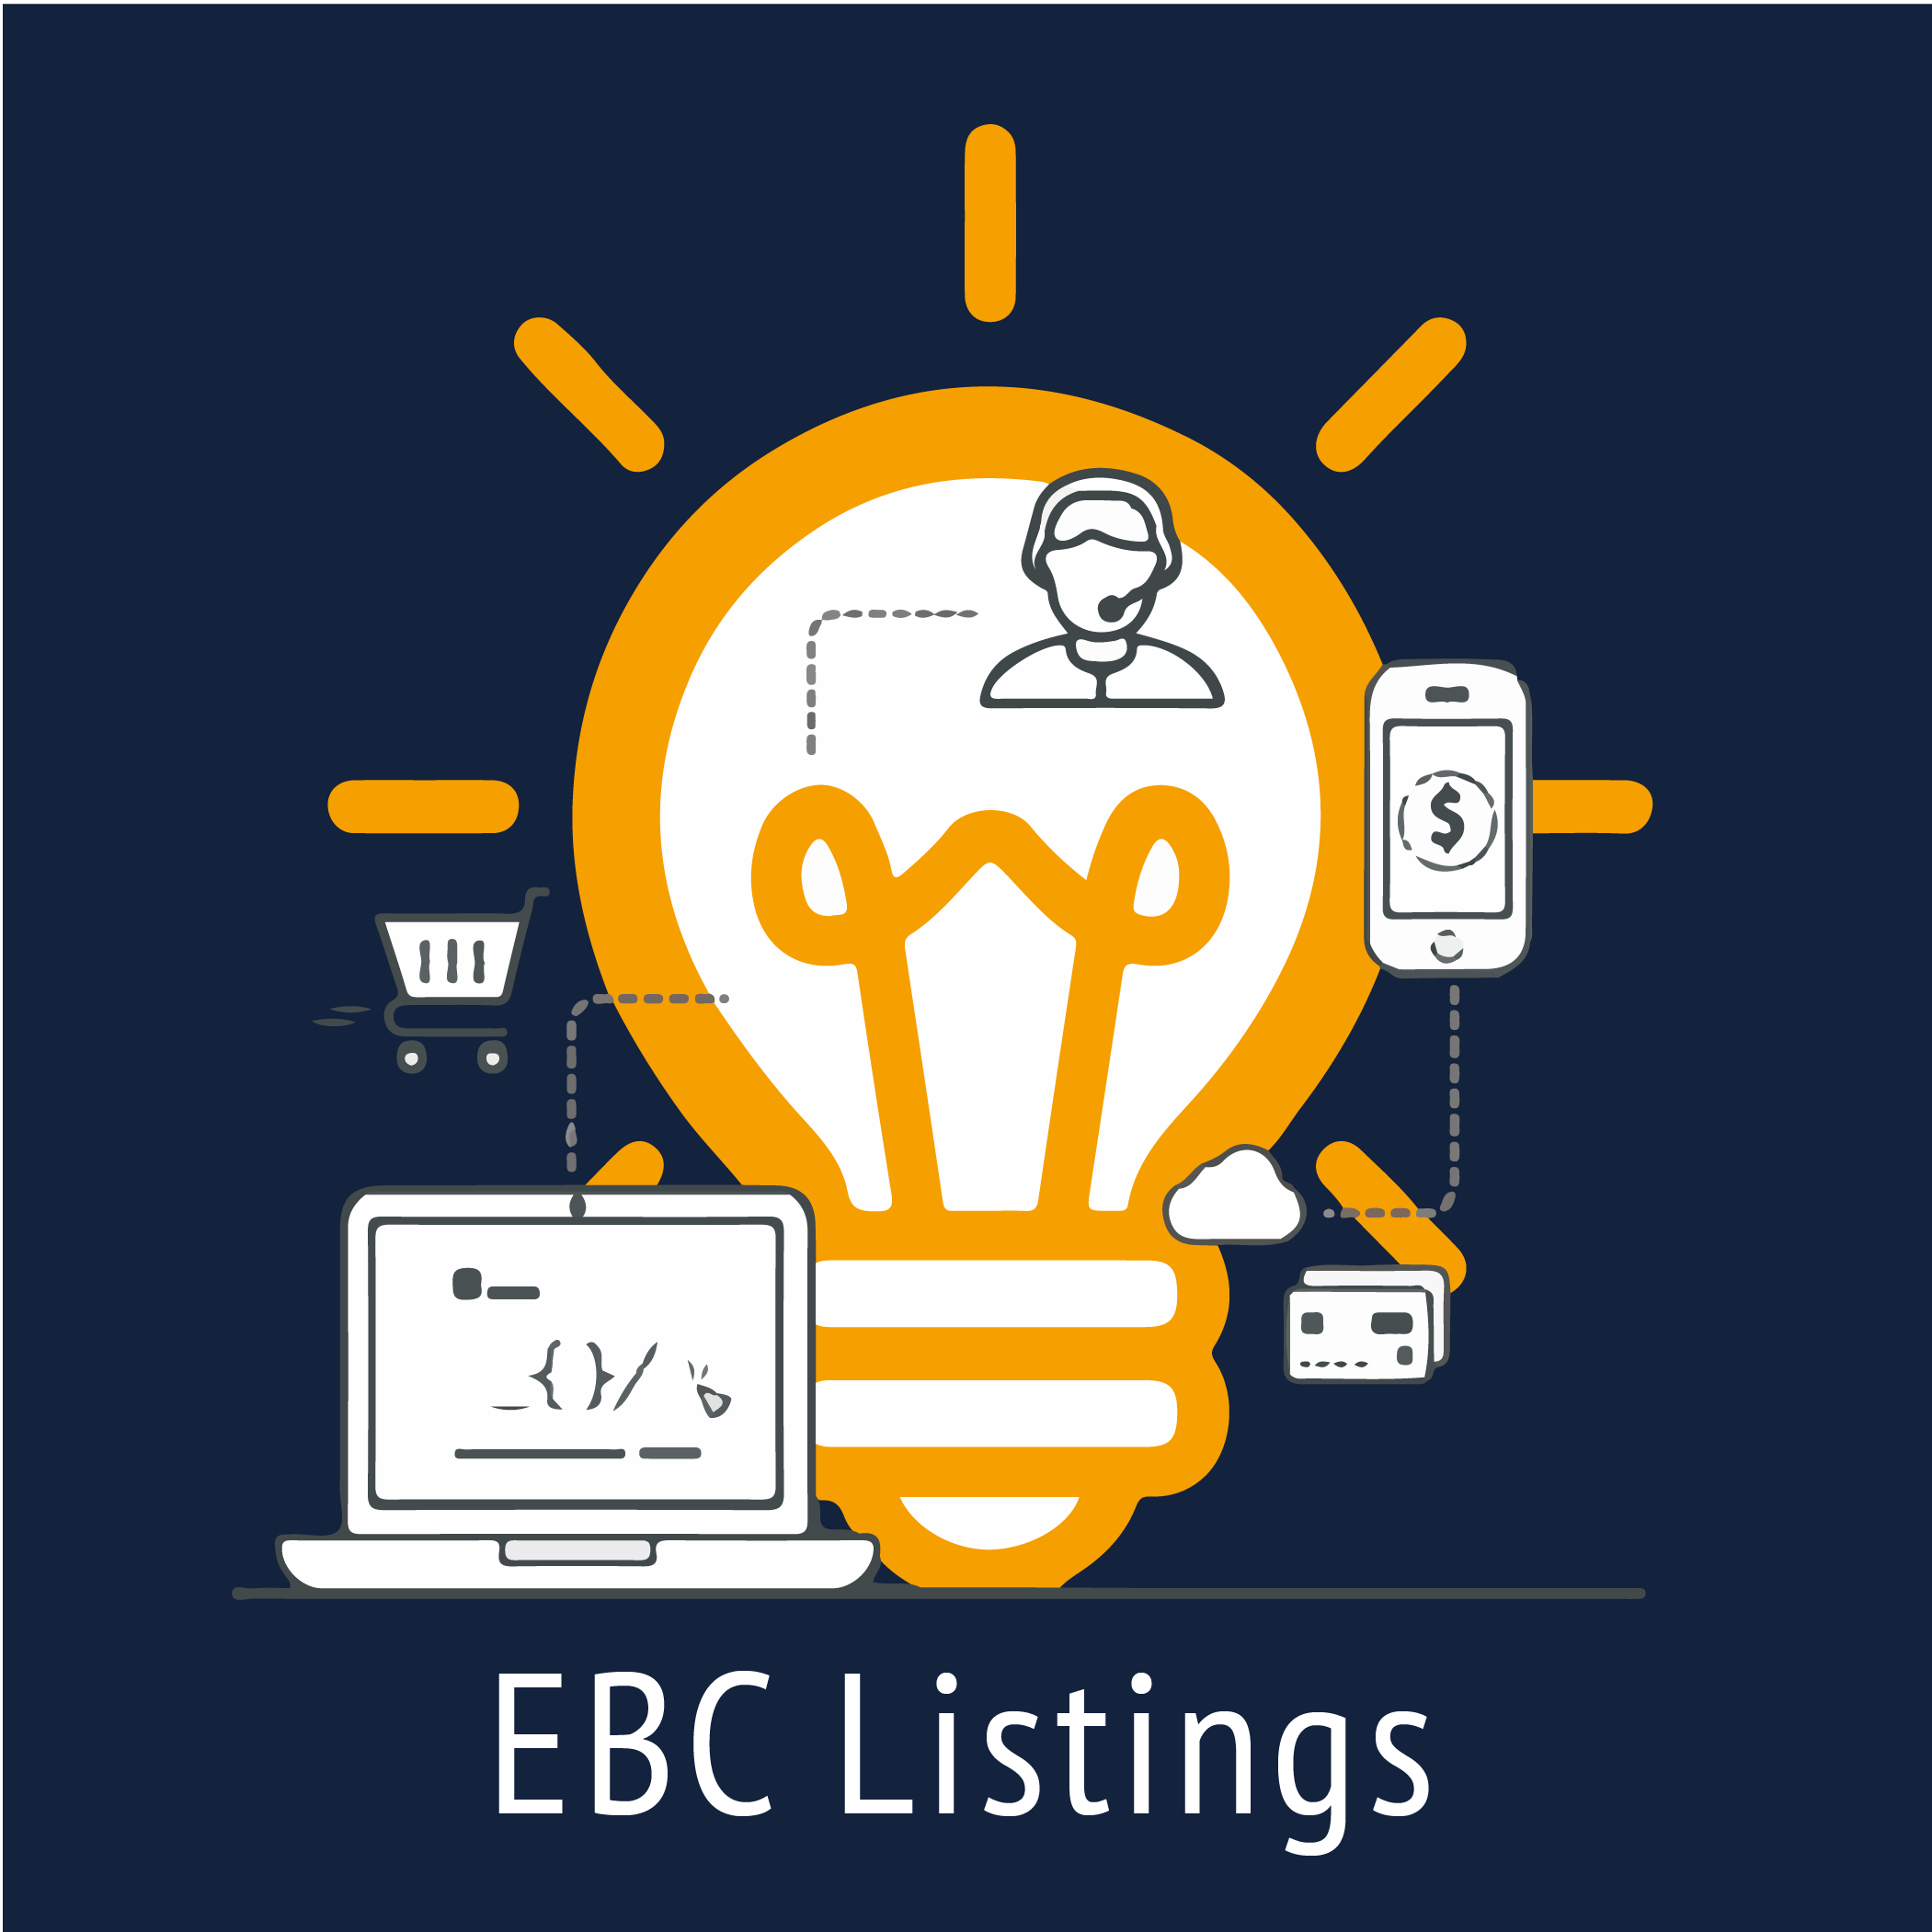 EBC Listing Service from Marketing by Emma's Emmazon